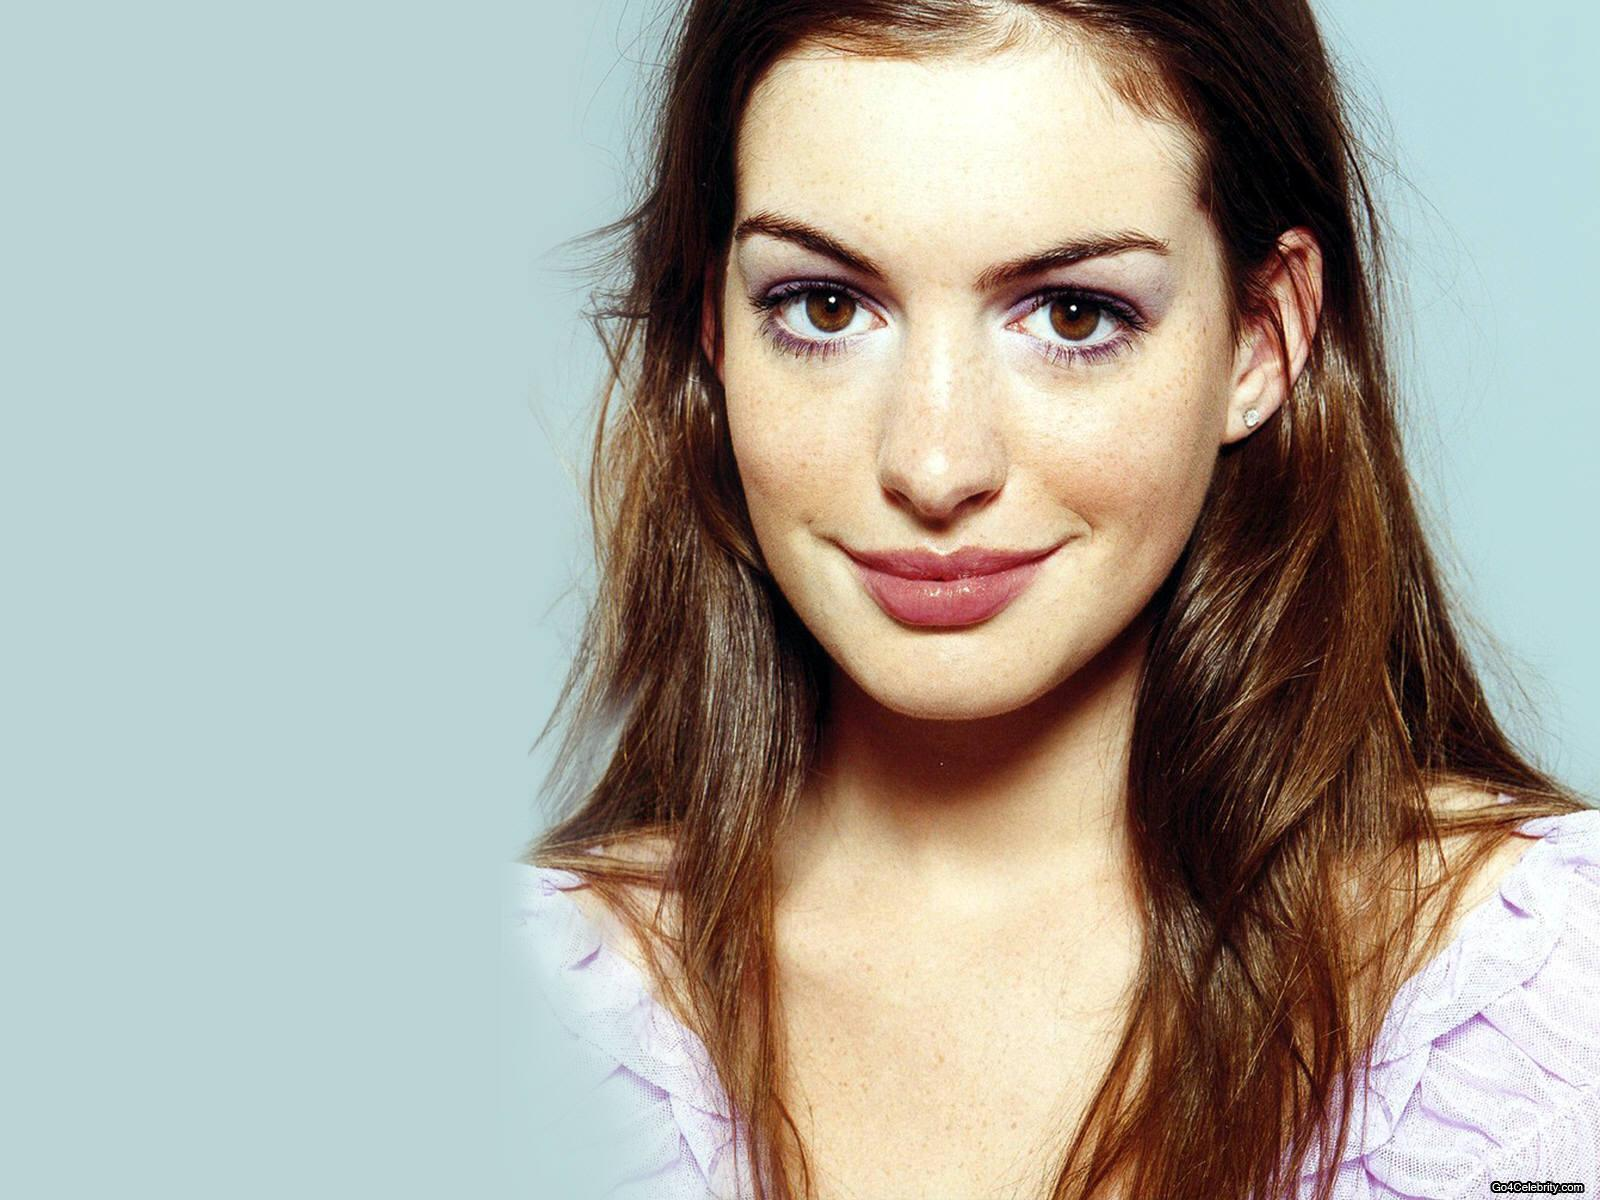 Anne hathaway images anne hd wallpaper and background photos 6819442 anne hathaway images anne hd wallpaper and background photos publicscrutiny Gallery